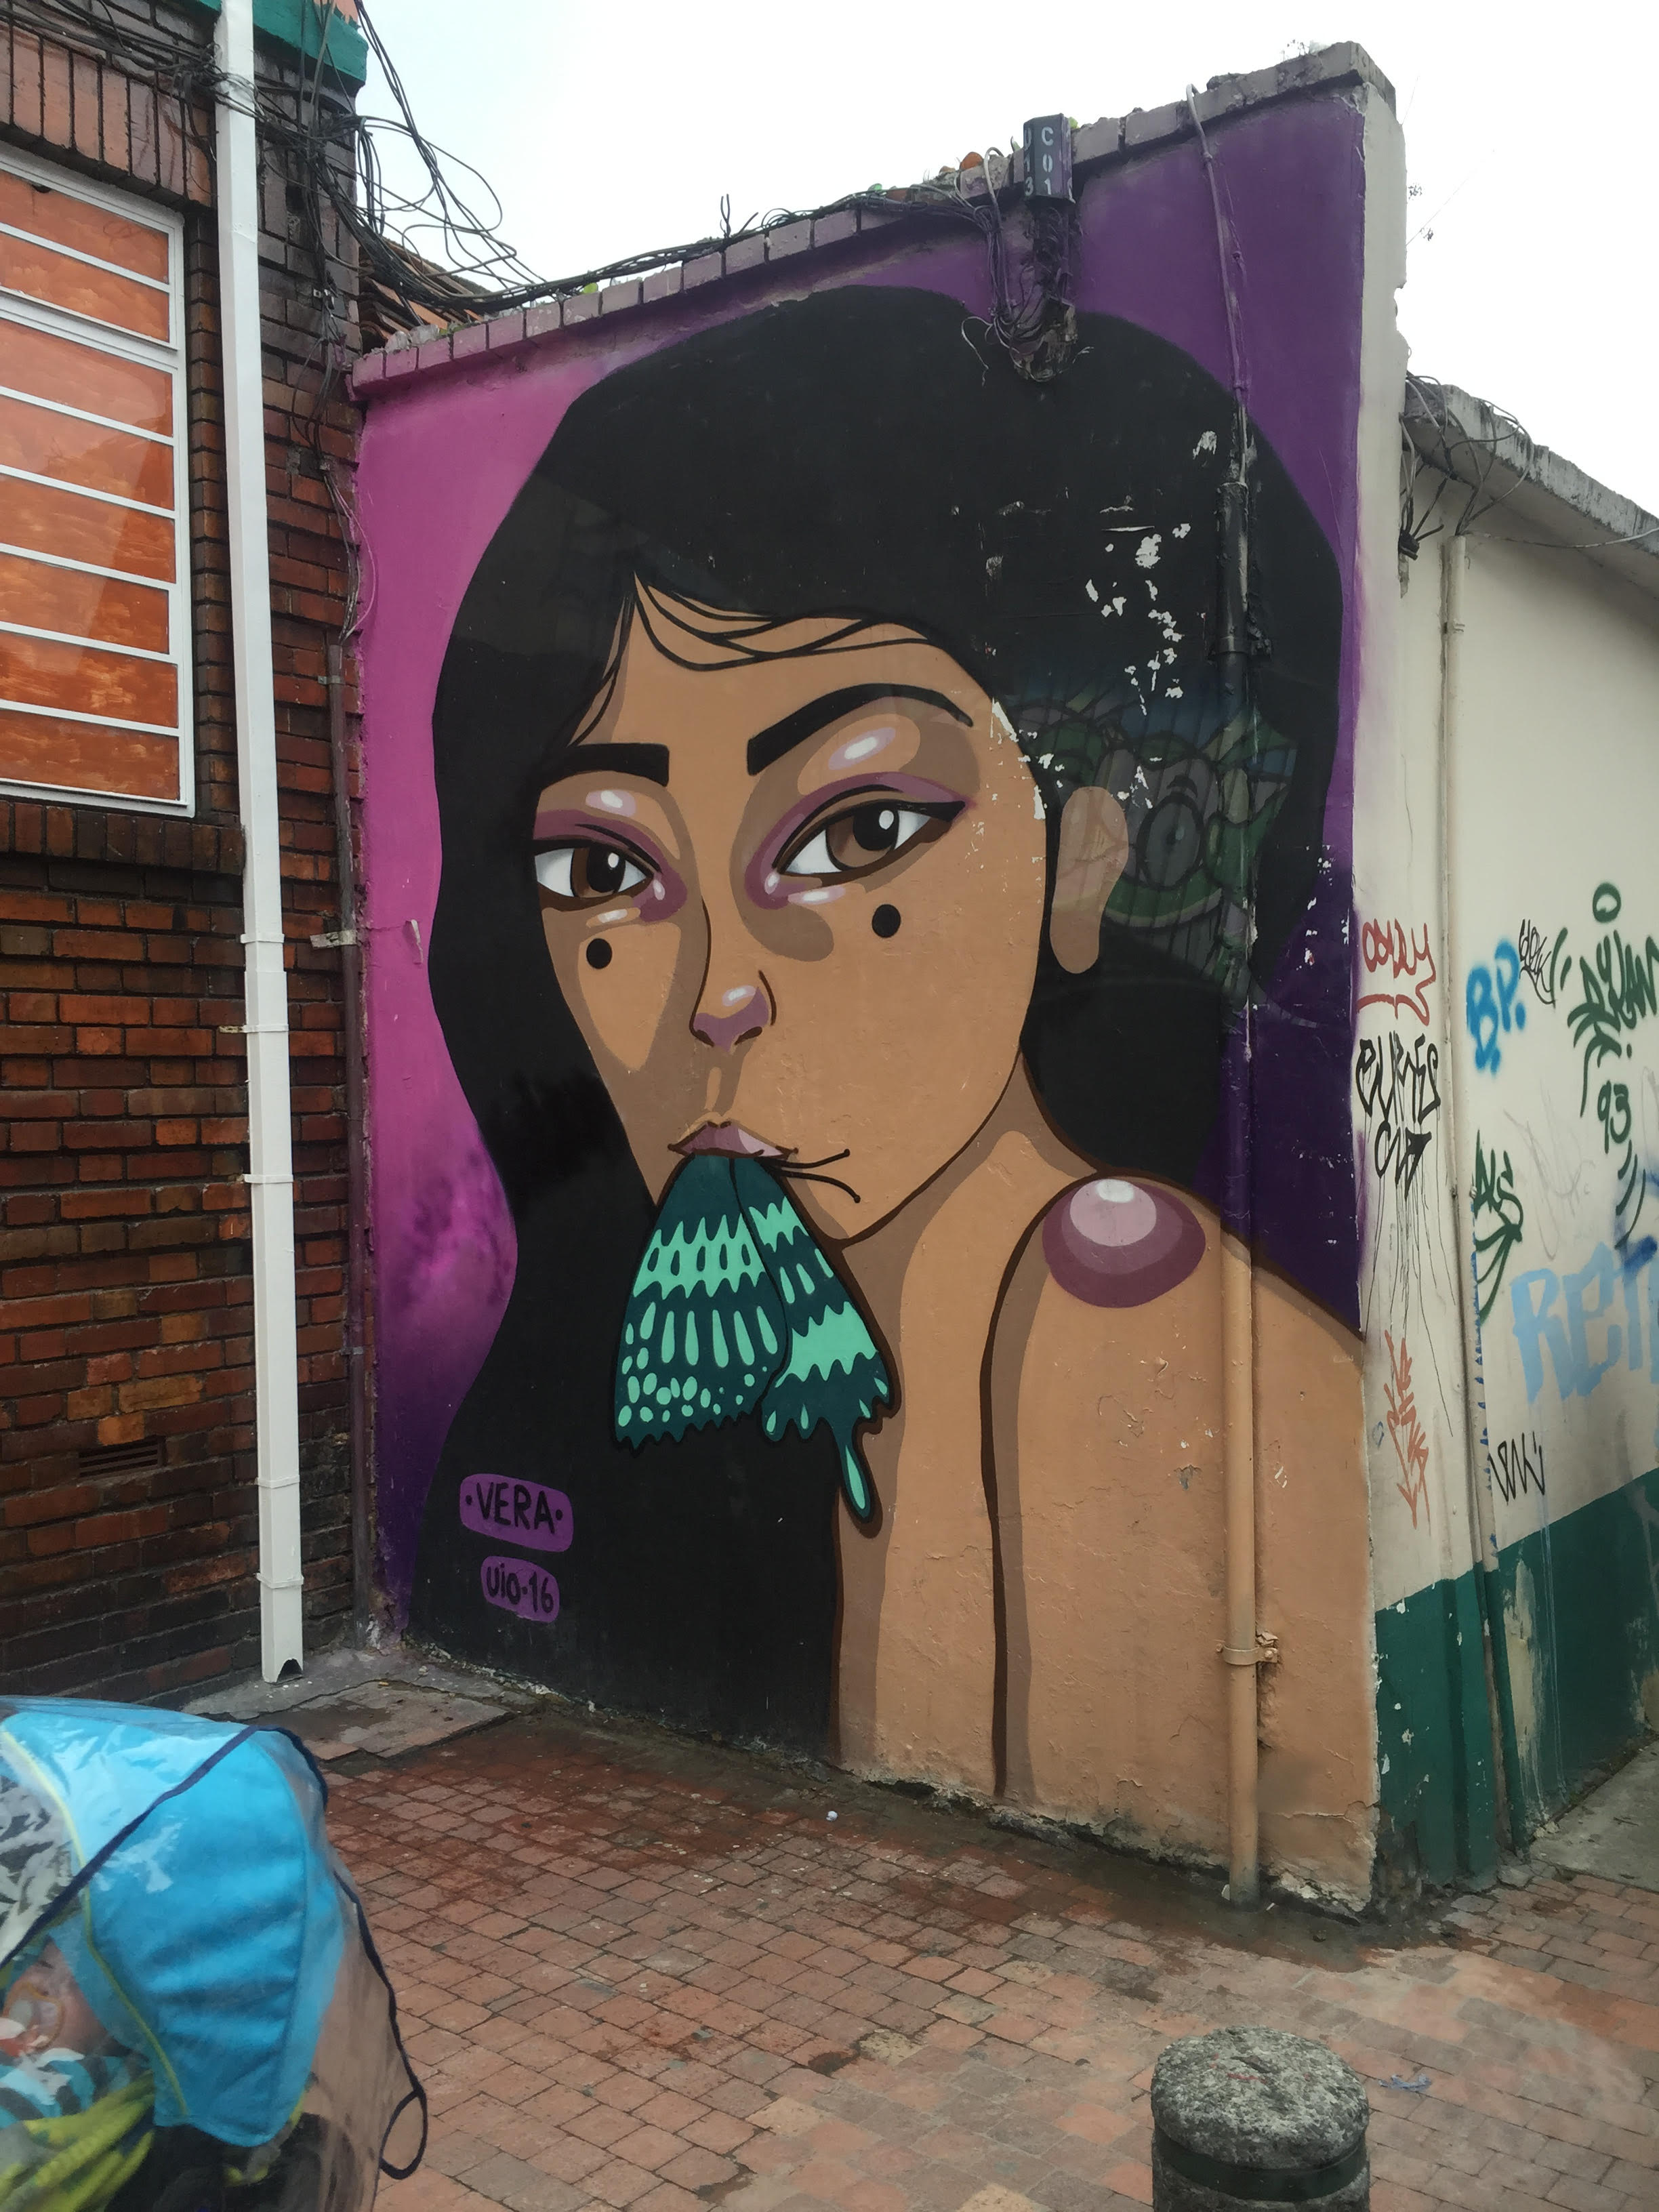 Just a sampling of the beautiful and creative street art across Bogota.